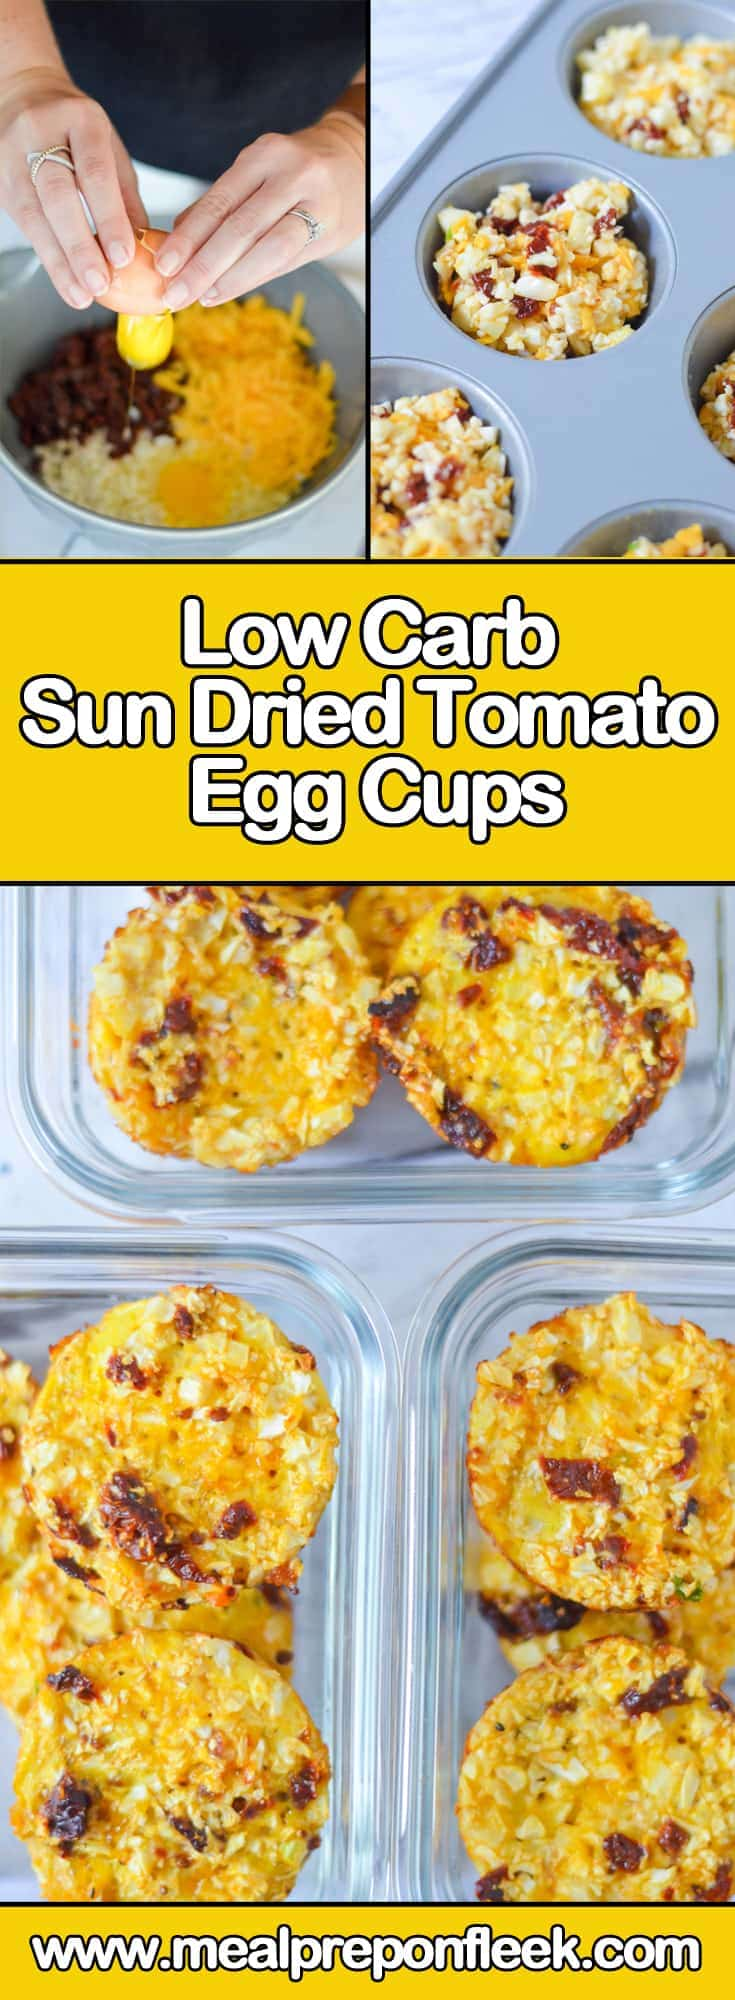 How To Make Low Carb Sun Dried Tomato Egg Cups